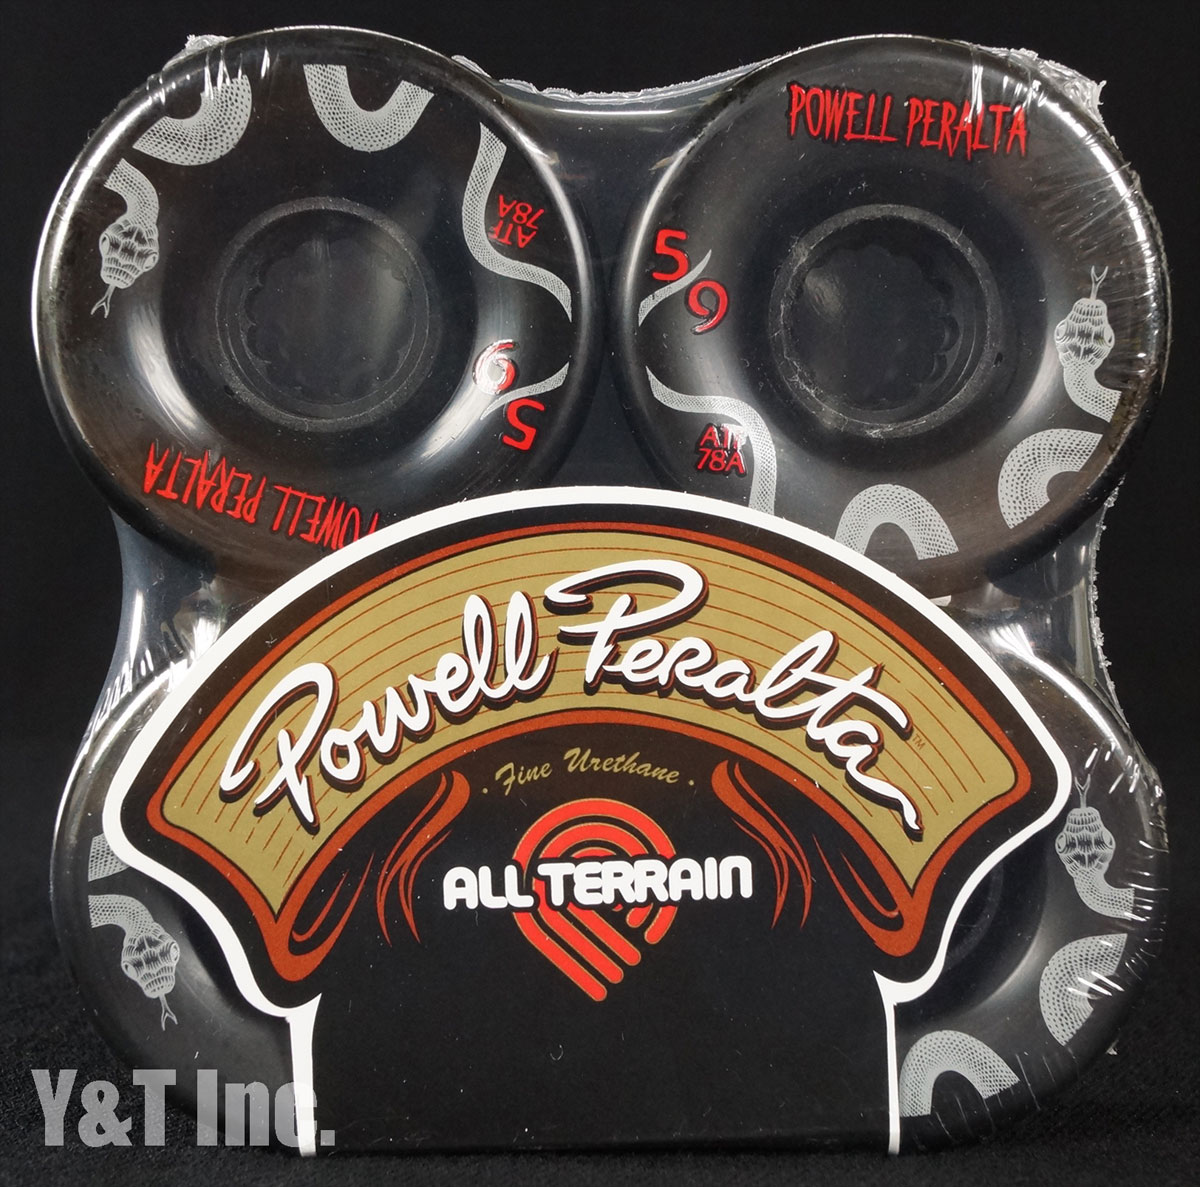 POWELL ALL TERRAIN 59mm 78a Black 1